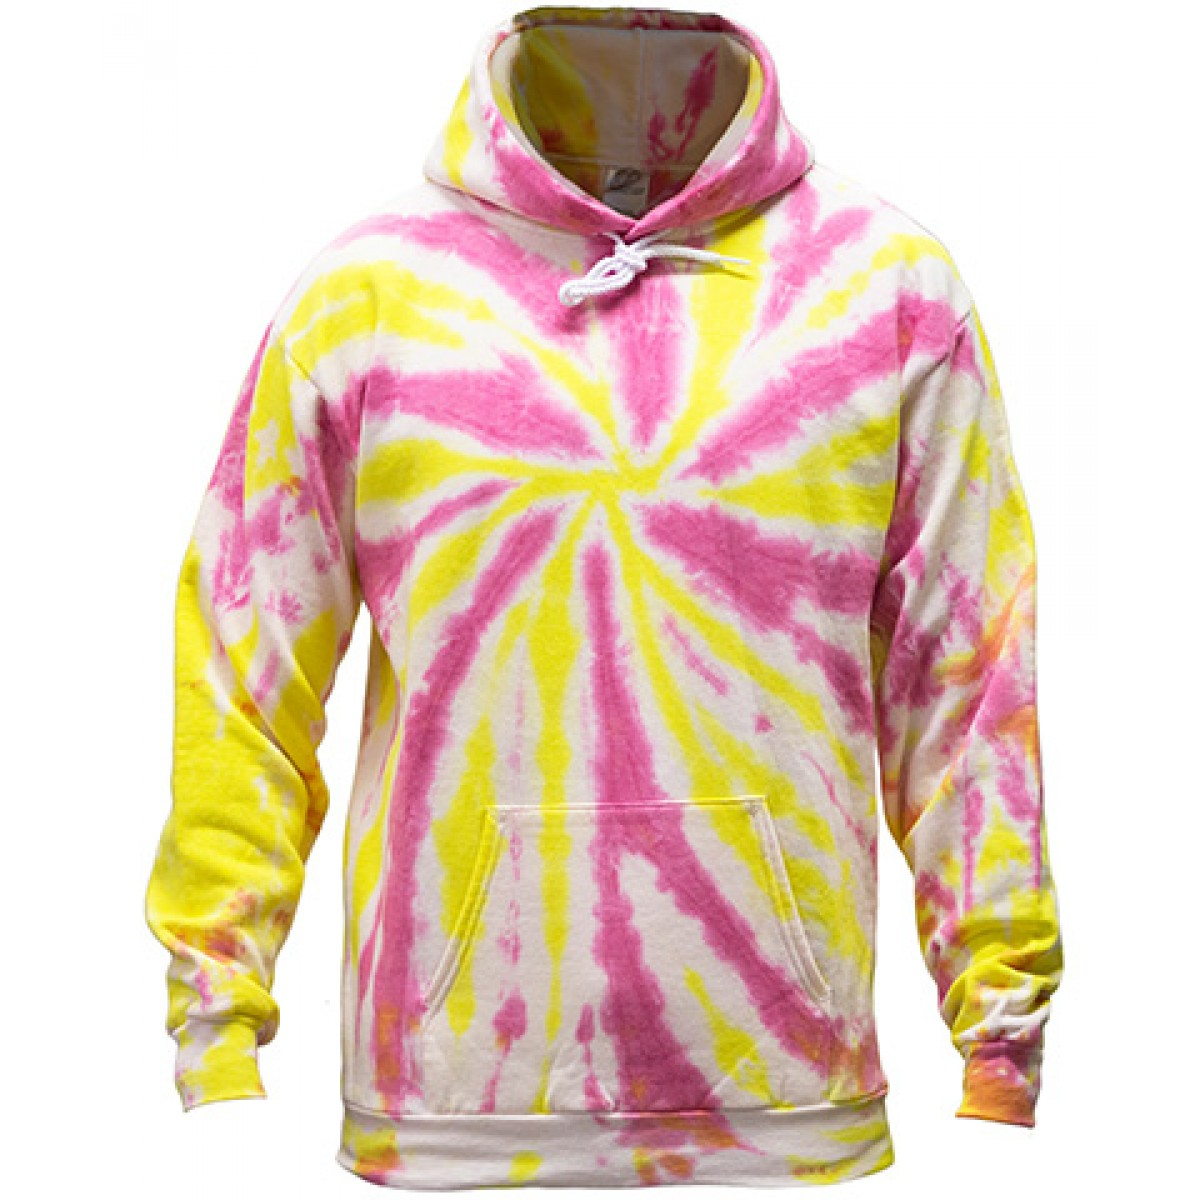 Tie-Dye Pullover Hooded Sweatshirt-Pink/Yellow-M